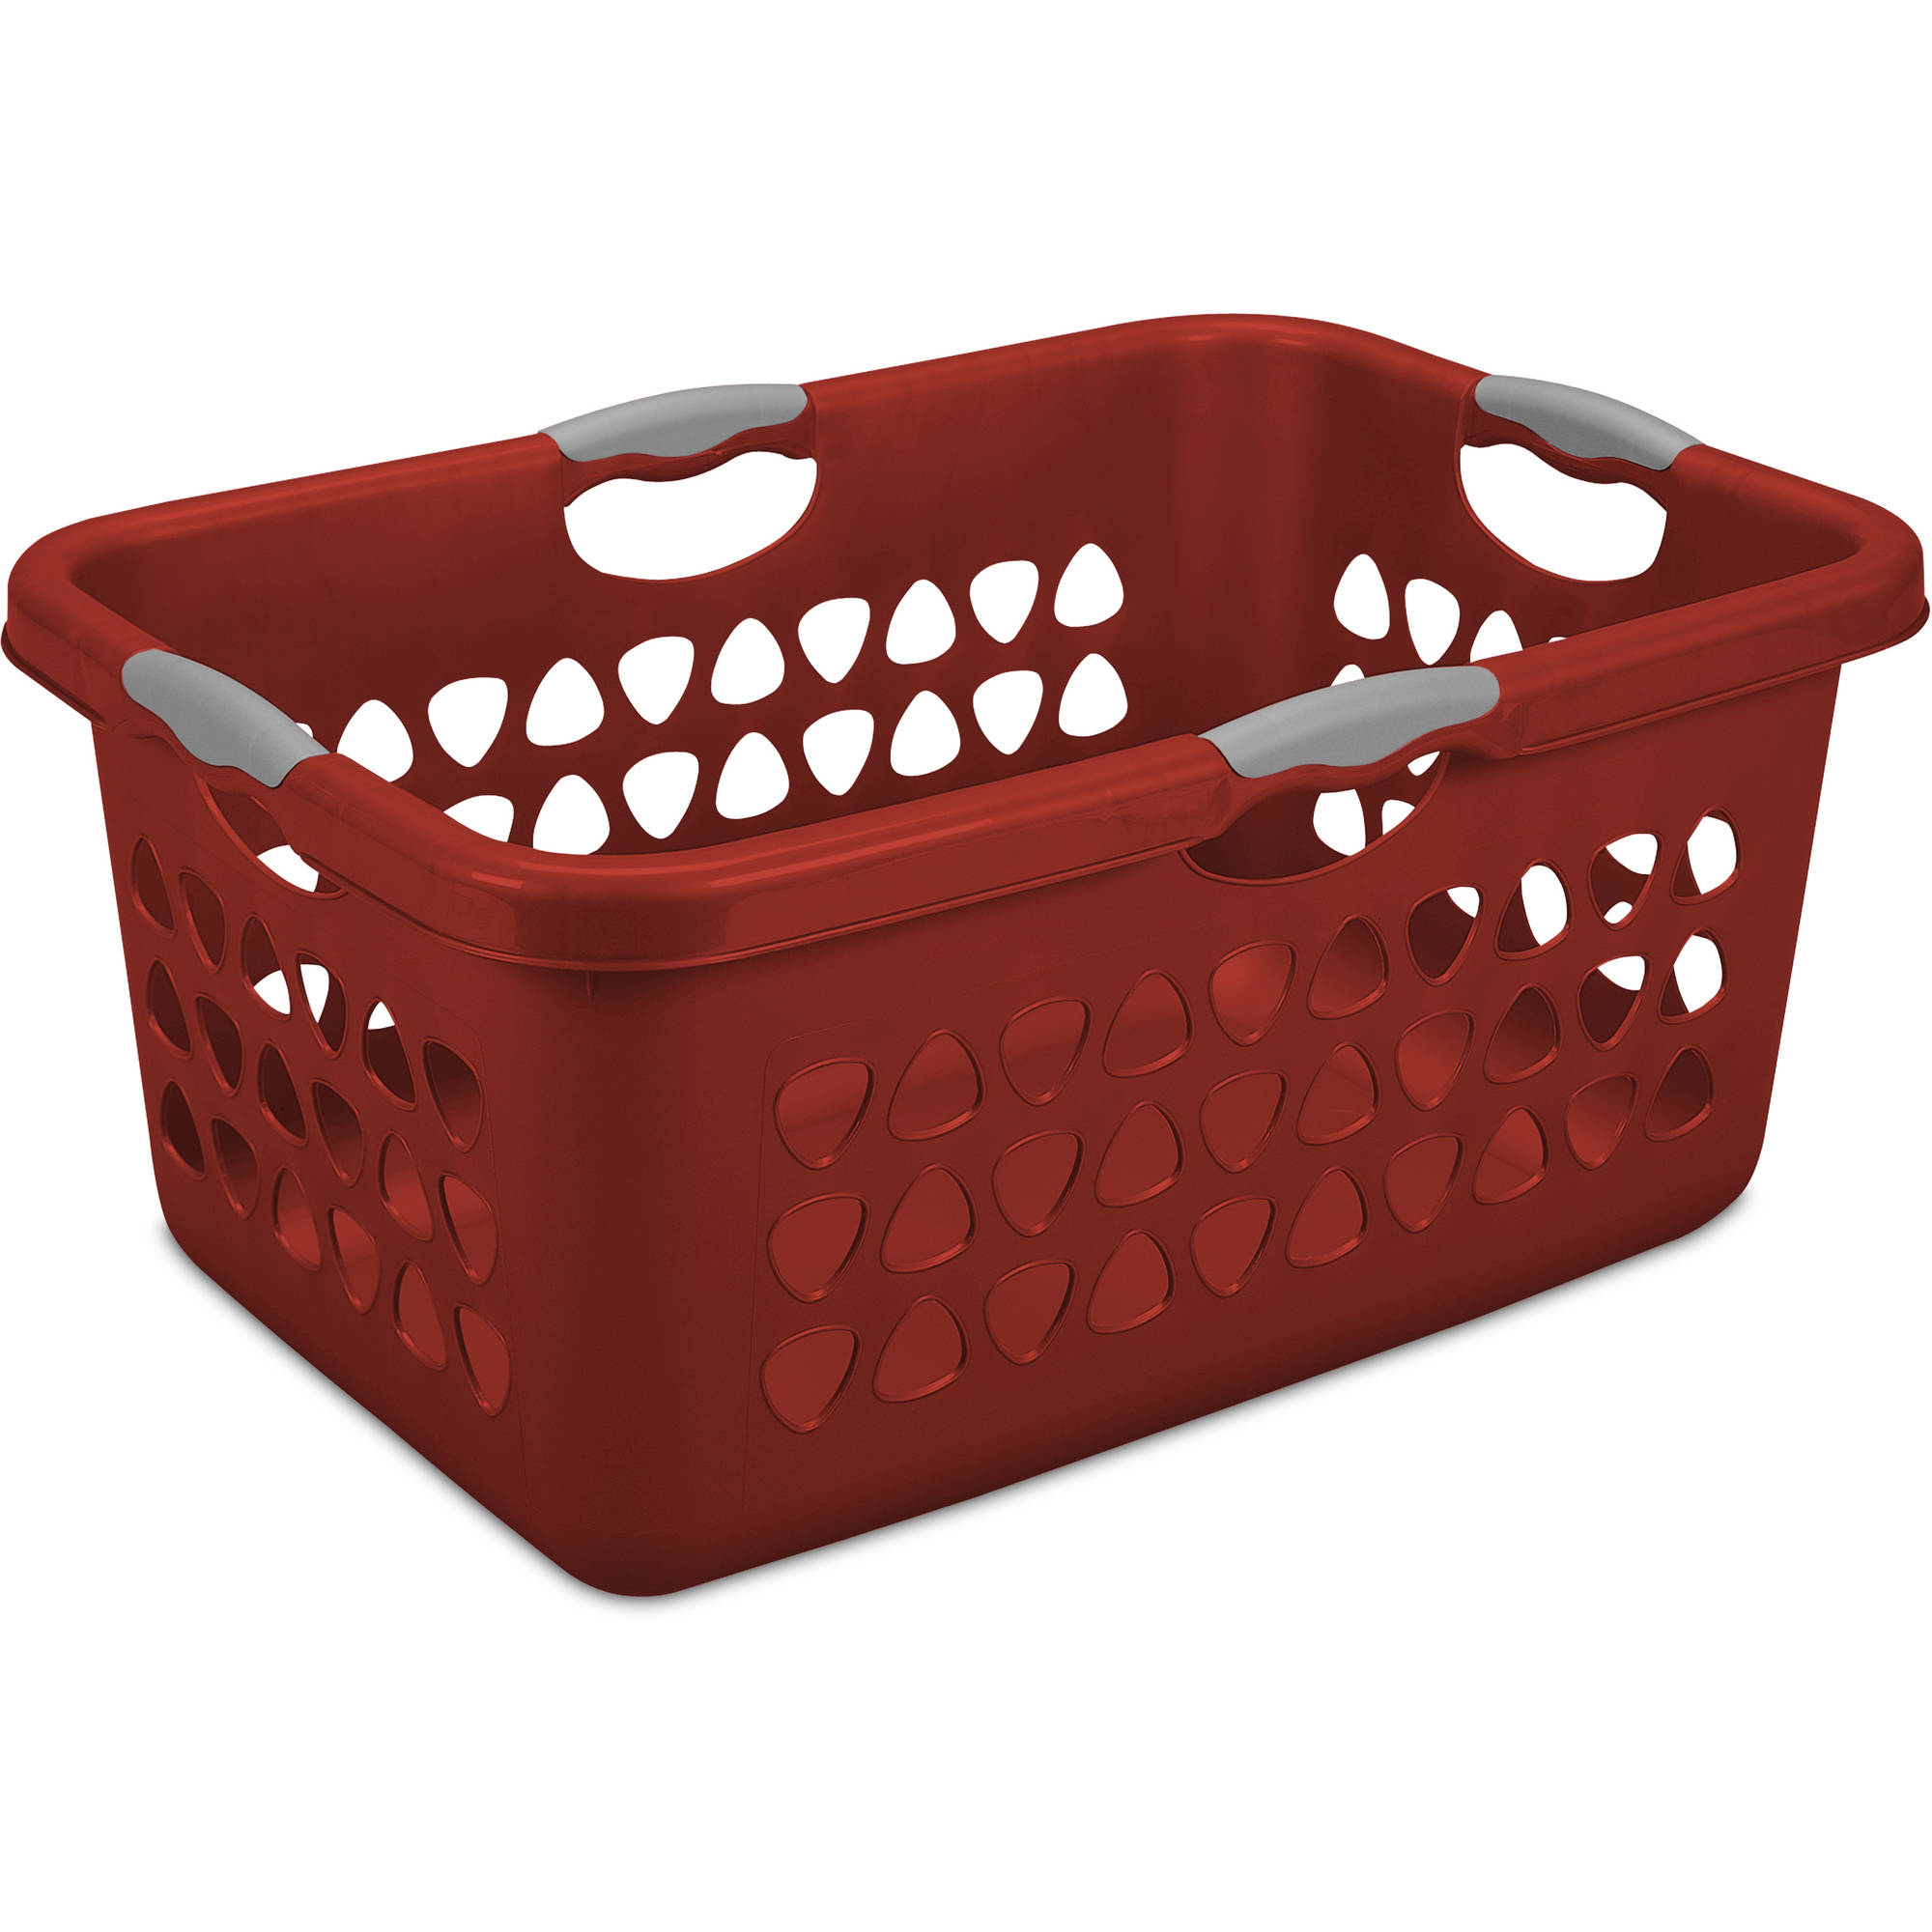 Sterilite 2 Bushel Laundry Basket, Red, Case of 4